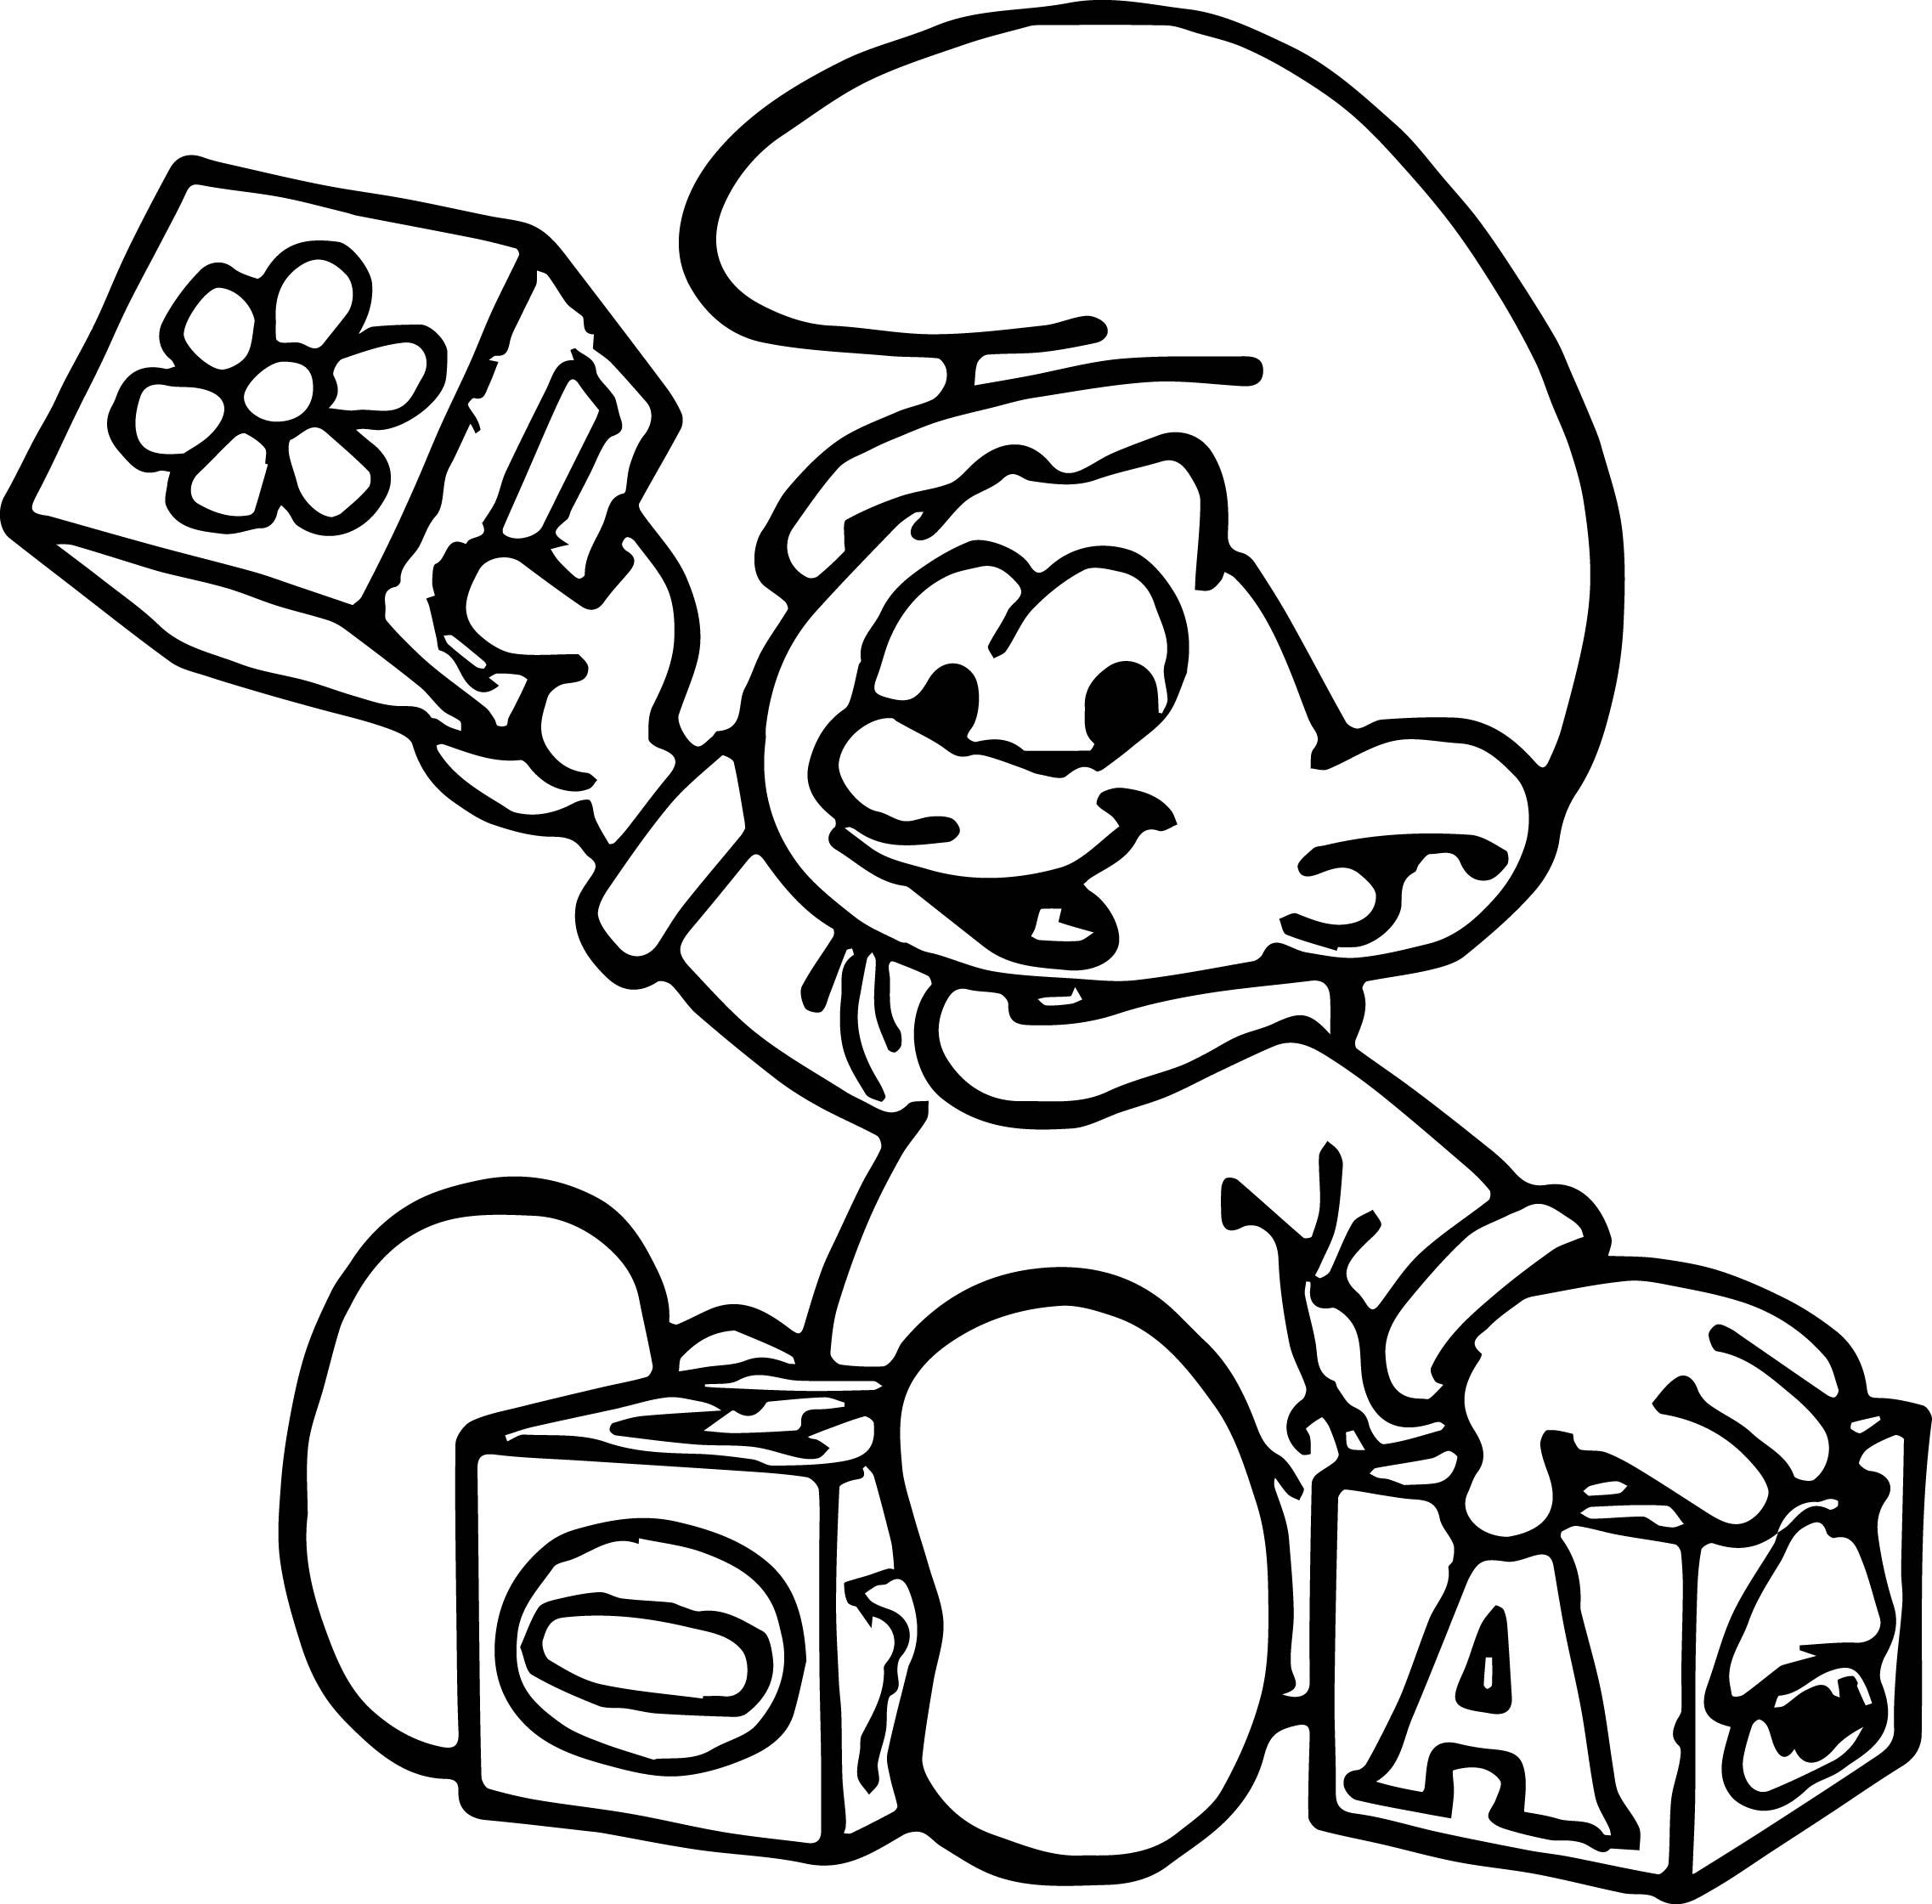 smurfs coloring pages awesome hefty smurf coloring pages coloring pages pages coloring smurfs